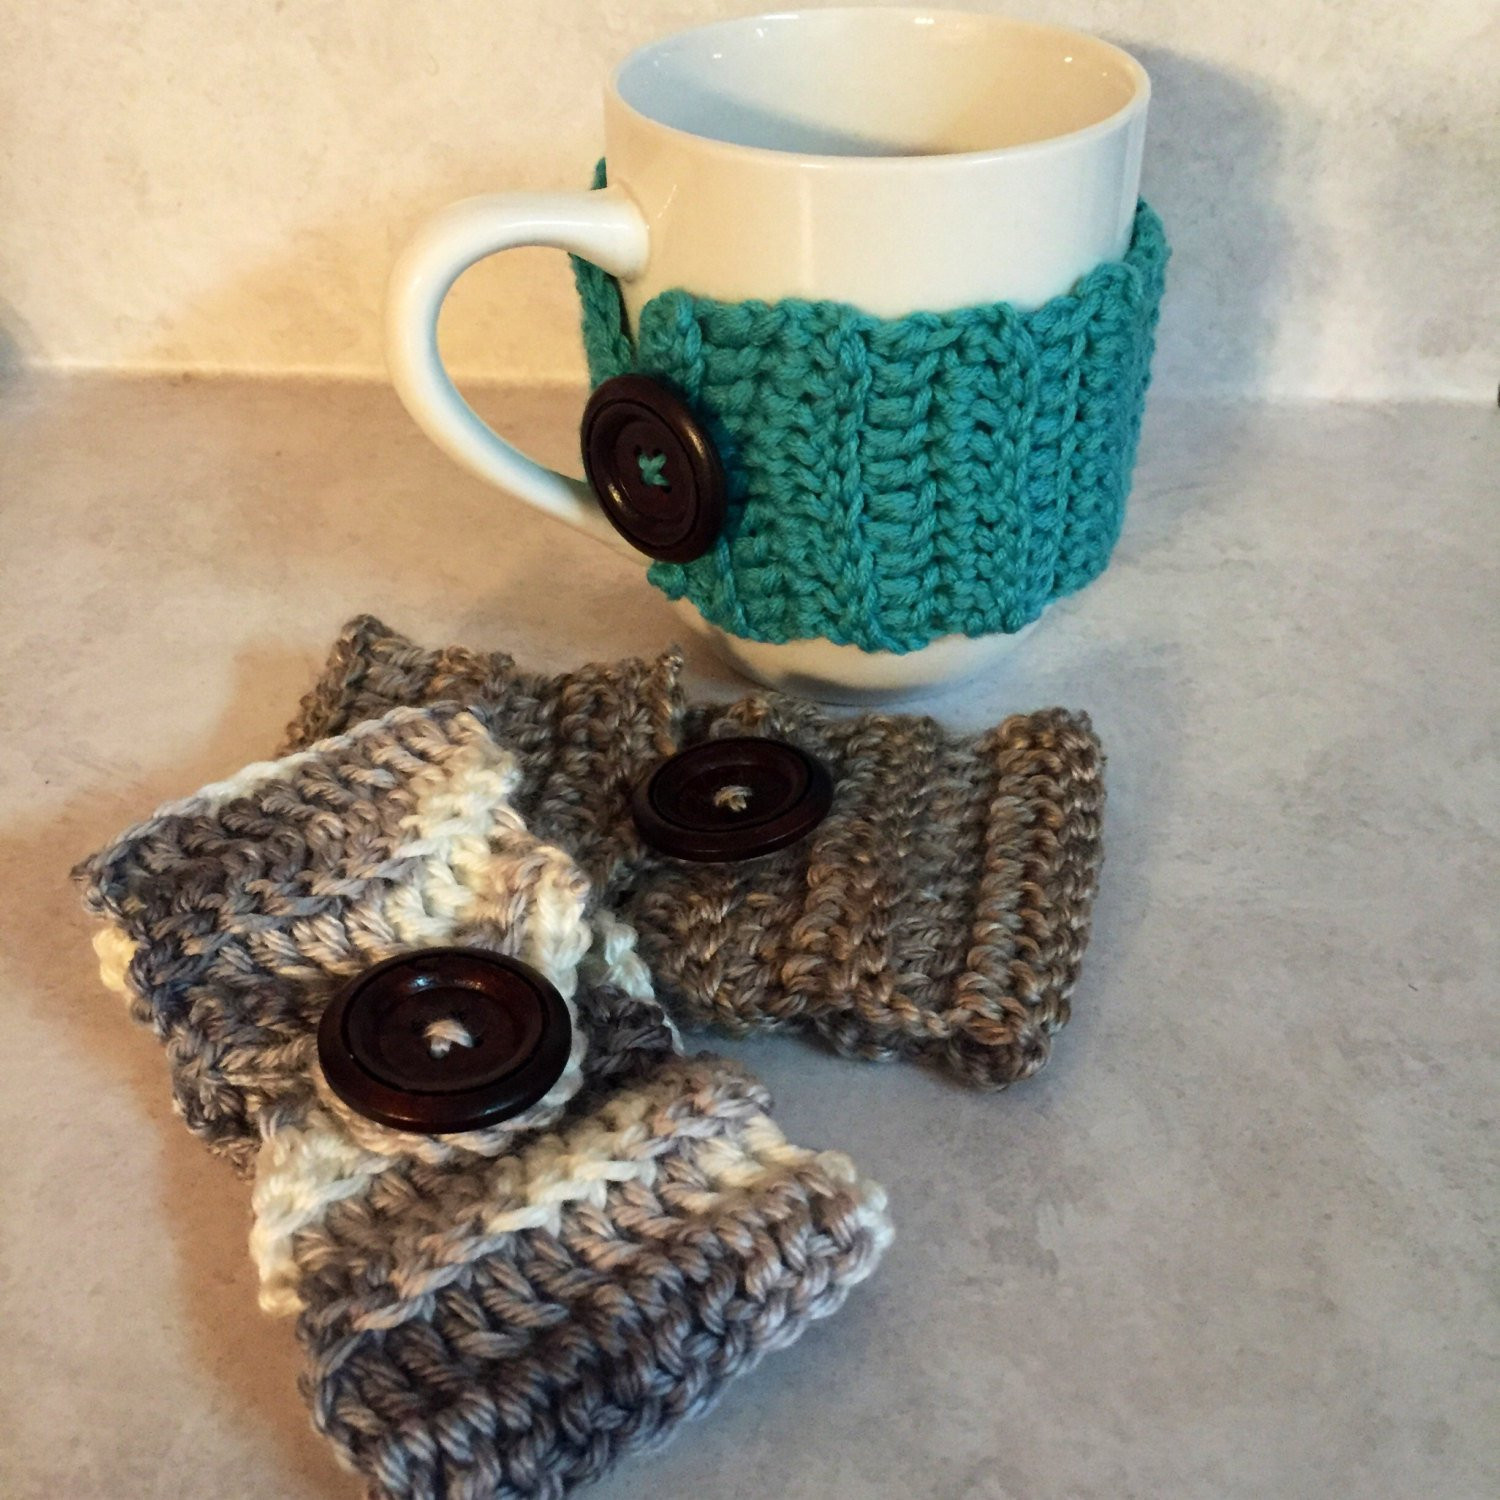 Crochet Coffee Cup Cozy New Crochet Tea Cozy Coffee Cup Sleeve Coffee Sleeve Mug Cozy Of Crochet Coffee Cup Cozy Awesome Crochet and Other Stuff Crochet A Mug Cozy Free Pattern